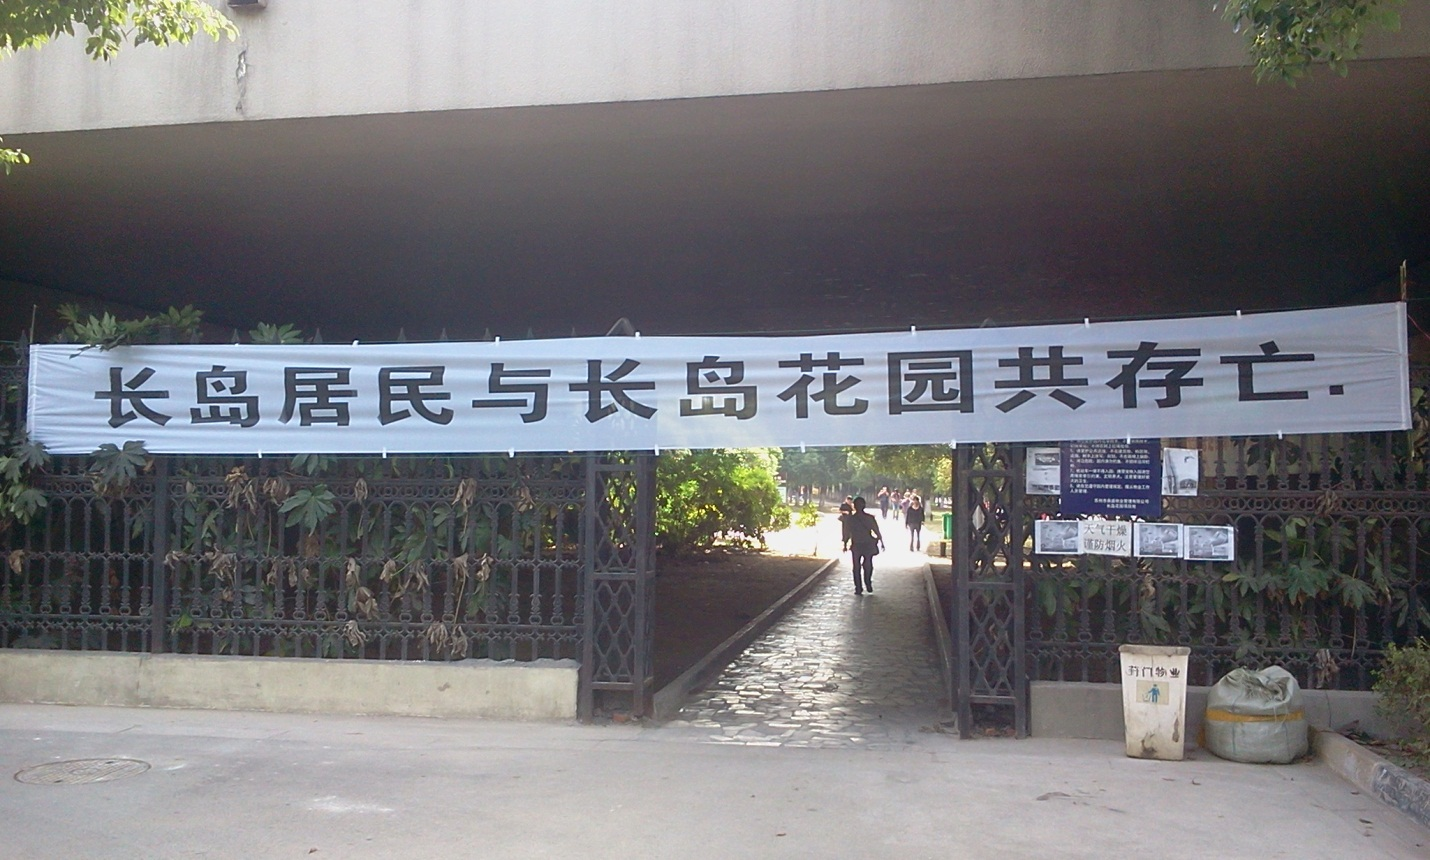 """Changdao Residents Live and Die with Changdao Garden""—banner by residents who fought to preserve green space in housing complex. Suzhou, Jiangsu Province, October 2012. Photo credit: Zheng Jianwei."